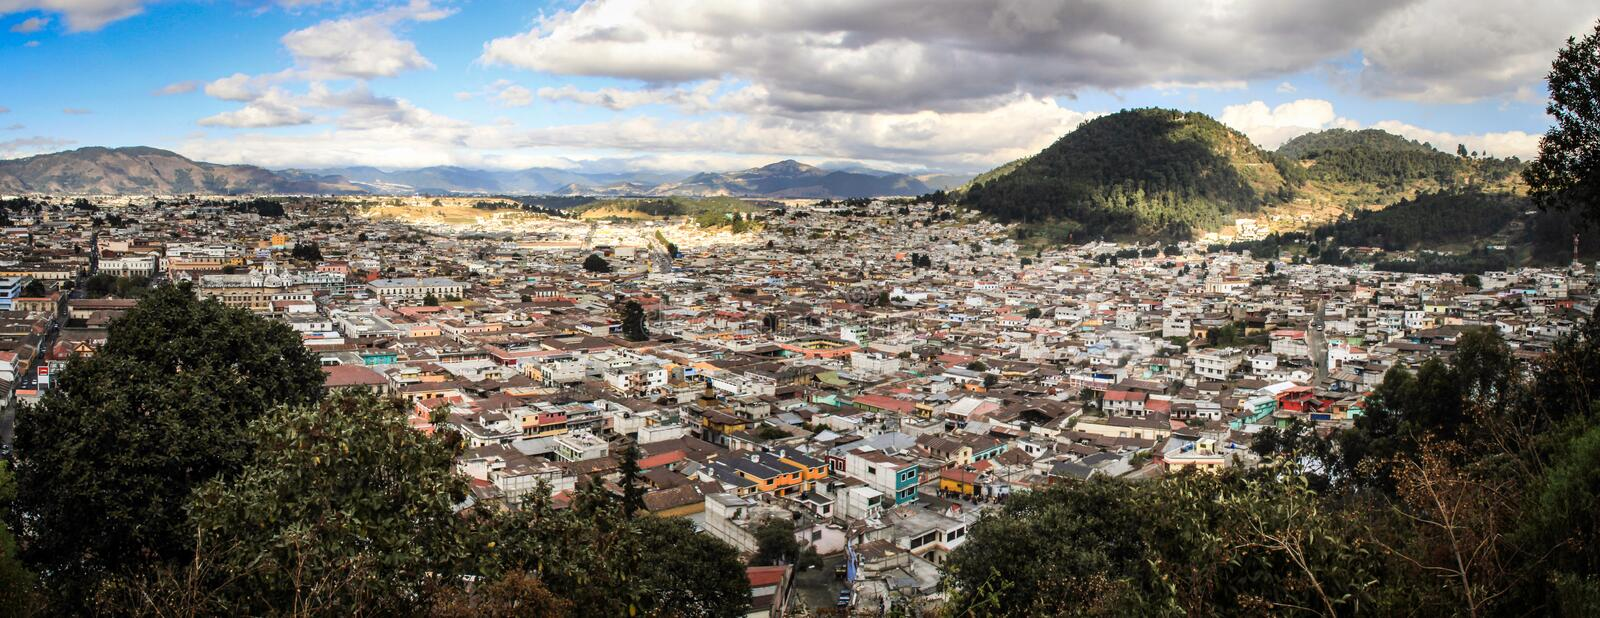 Panoramic view on Quetzaltenango, coming down from the Cerro Quemado, Quetzaltenango, Altiplano, Guatemala. Quetzaltenango, also known by its Maya name, Xelaj royalty free stock photography